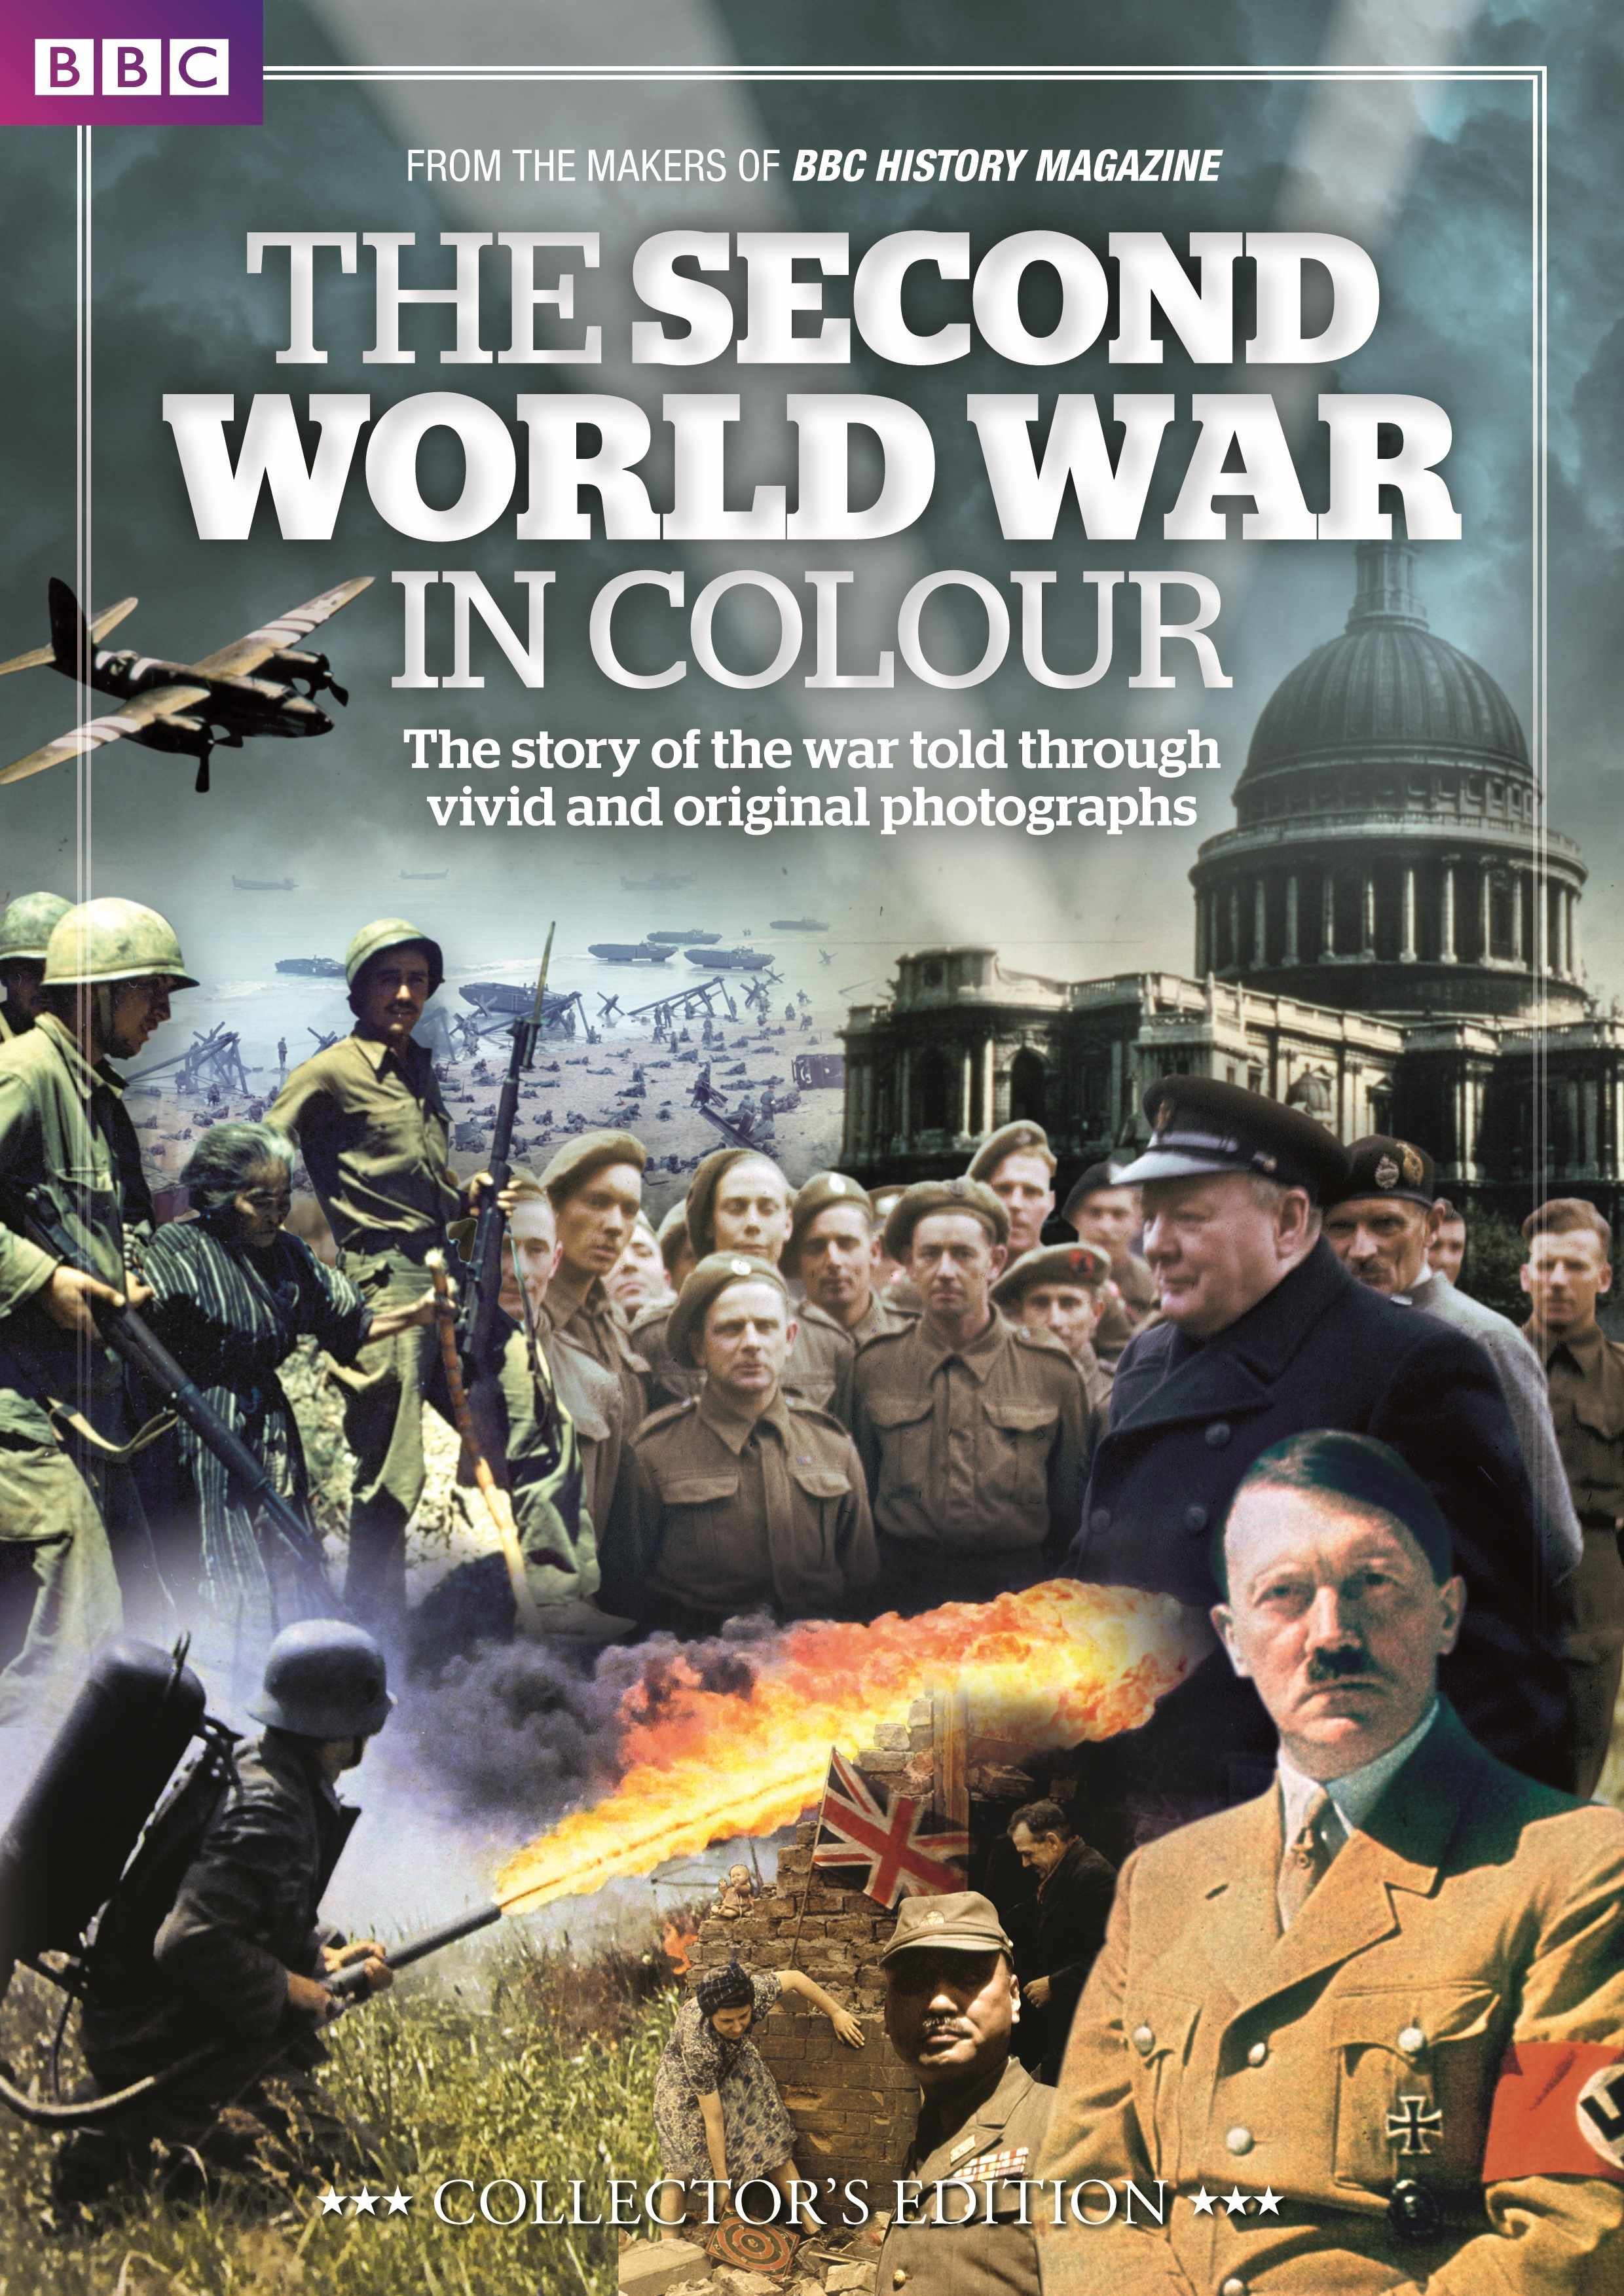 The Second World War In Colour.